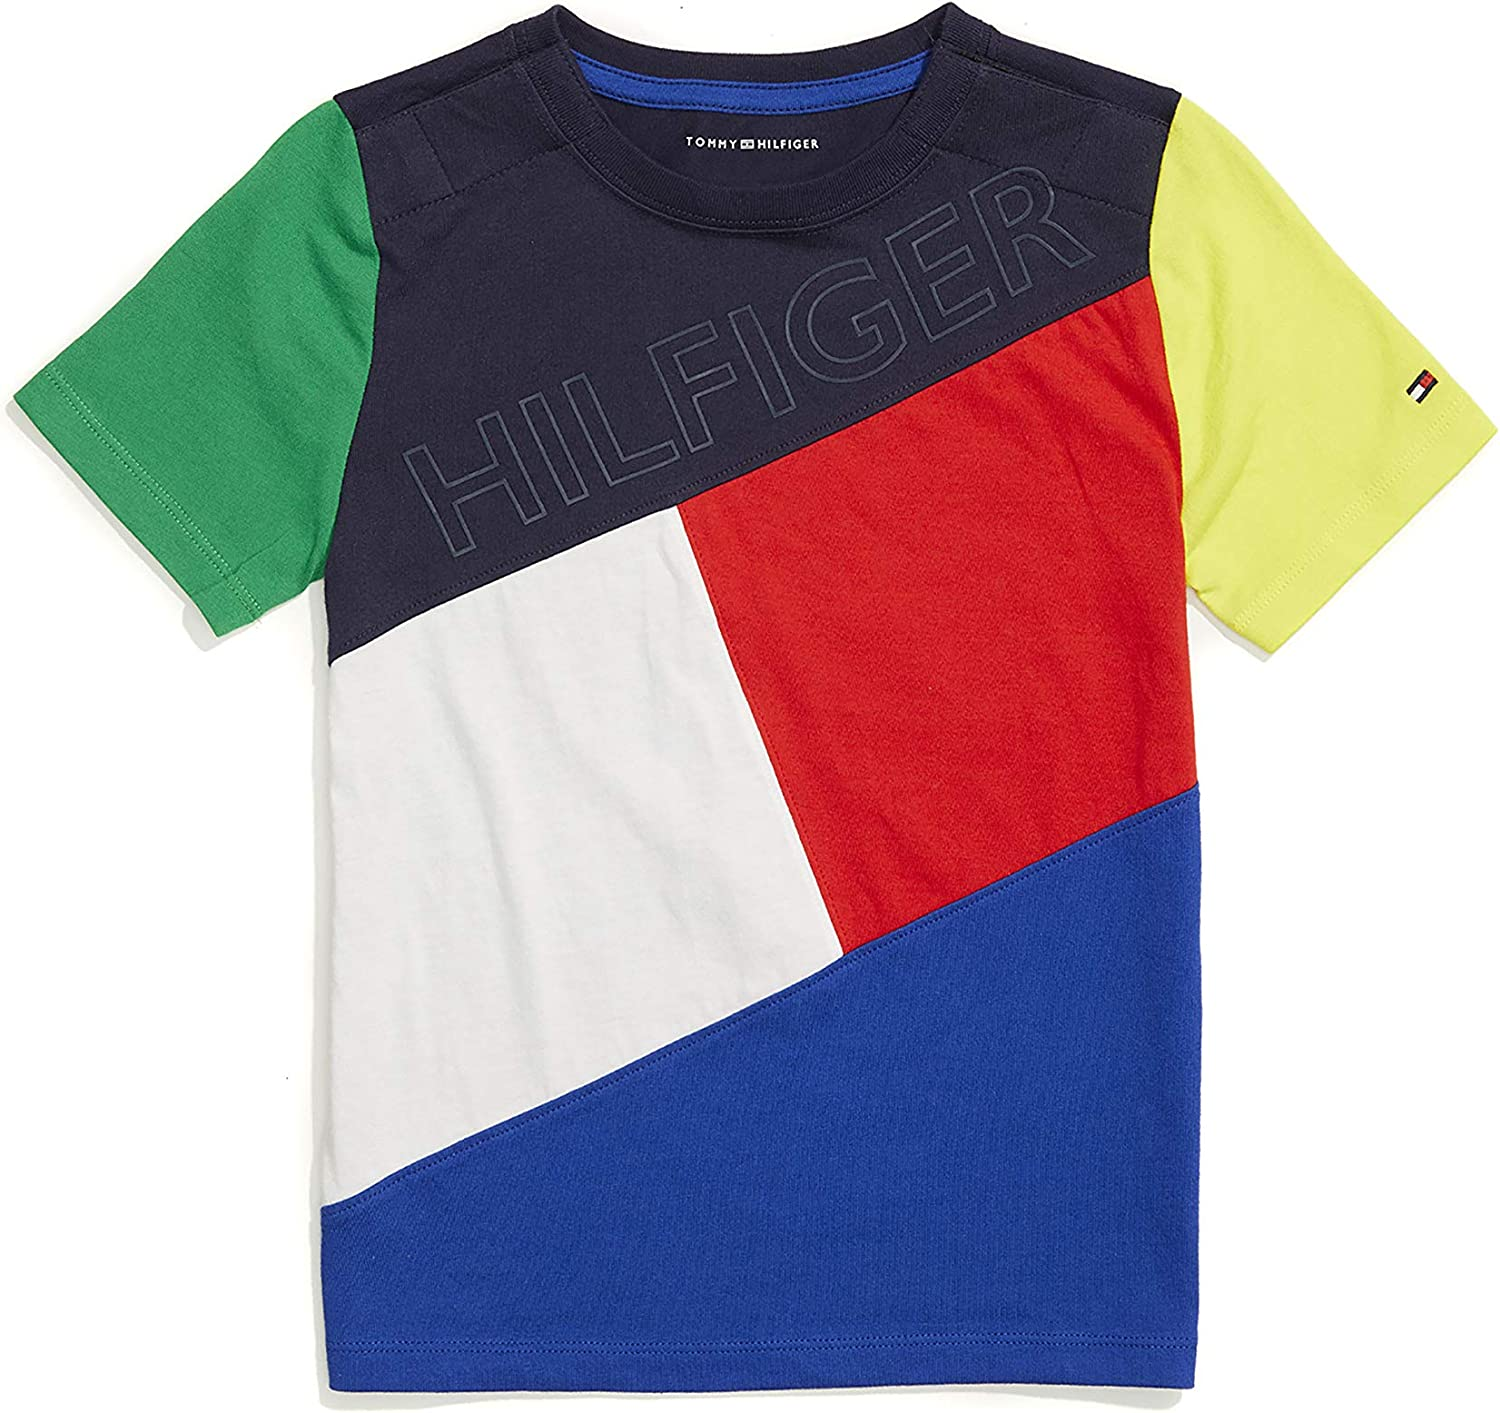 Tommy Hilfiger Boys Adaptive T Shirt With Velcro Brand Closure at Shoulders